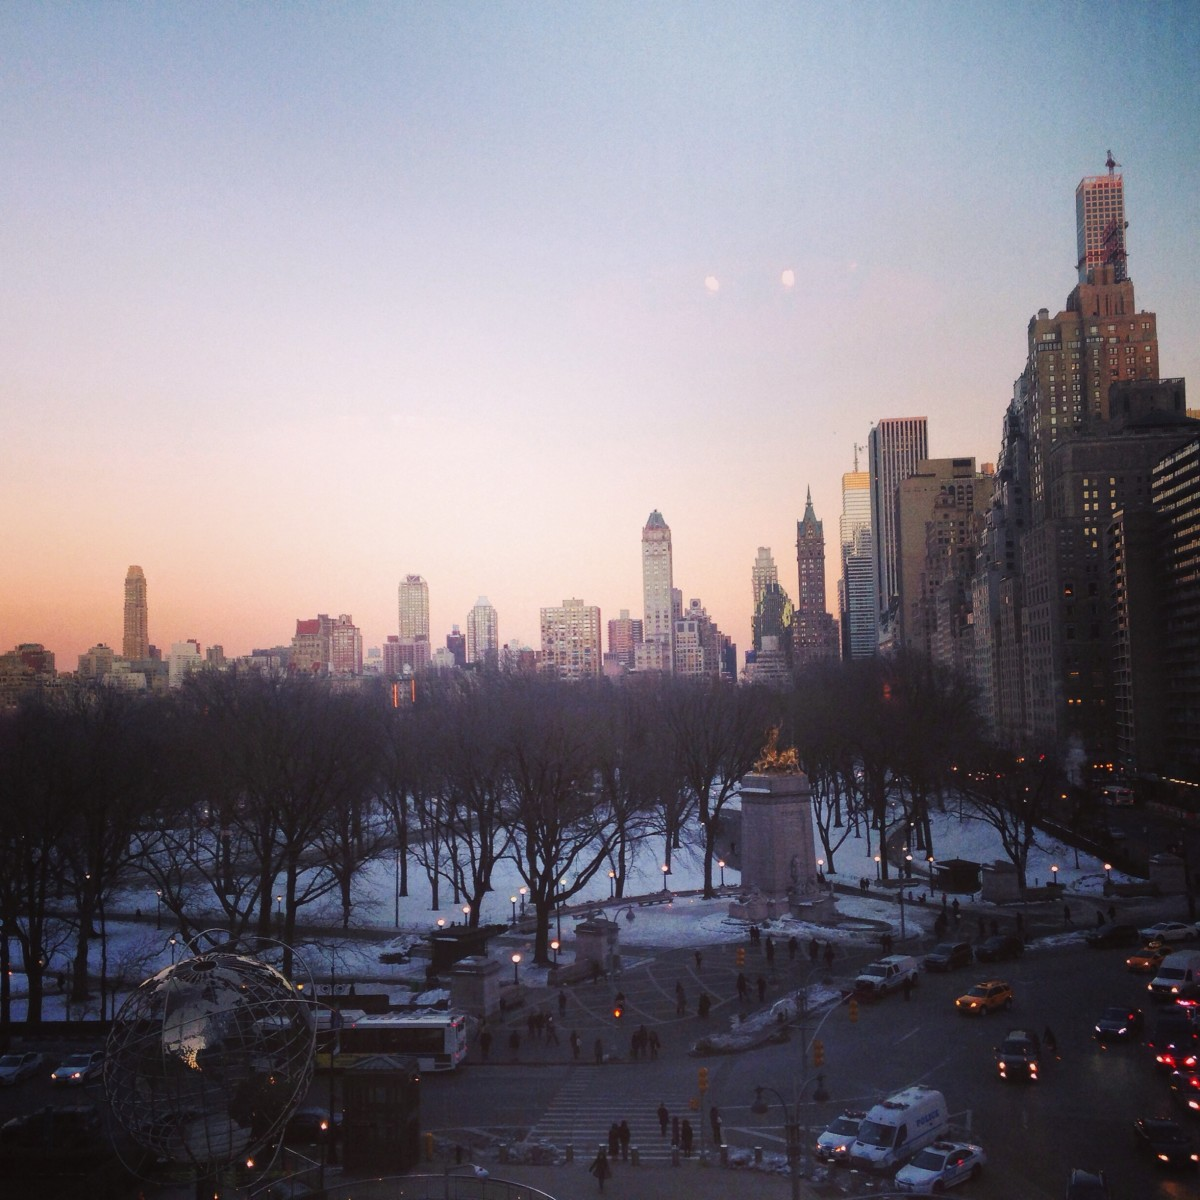 Sunset on Columbus Circle in NYC